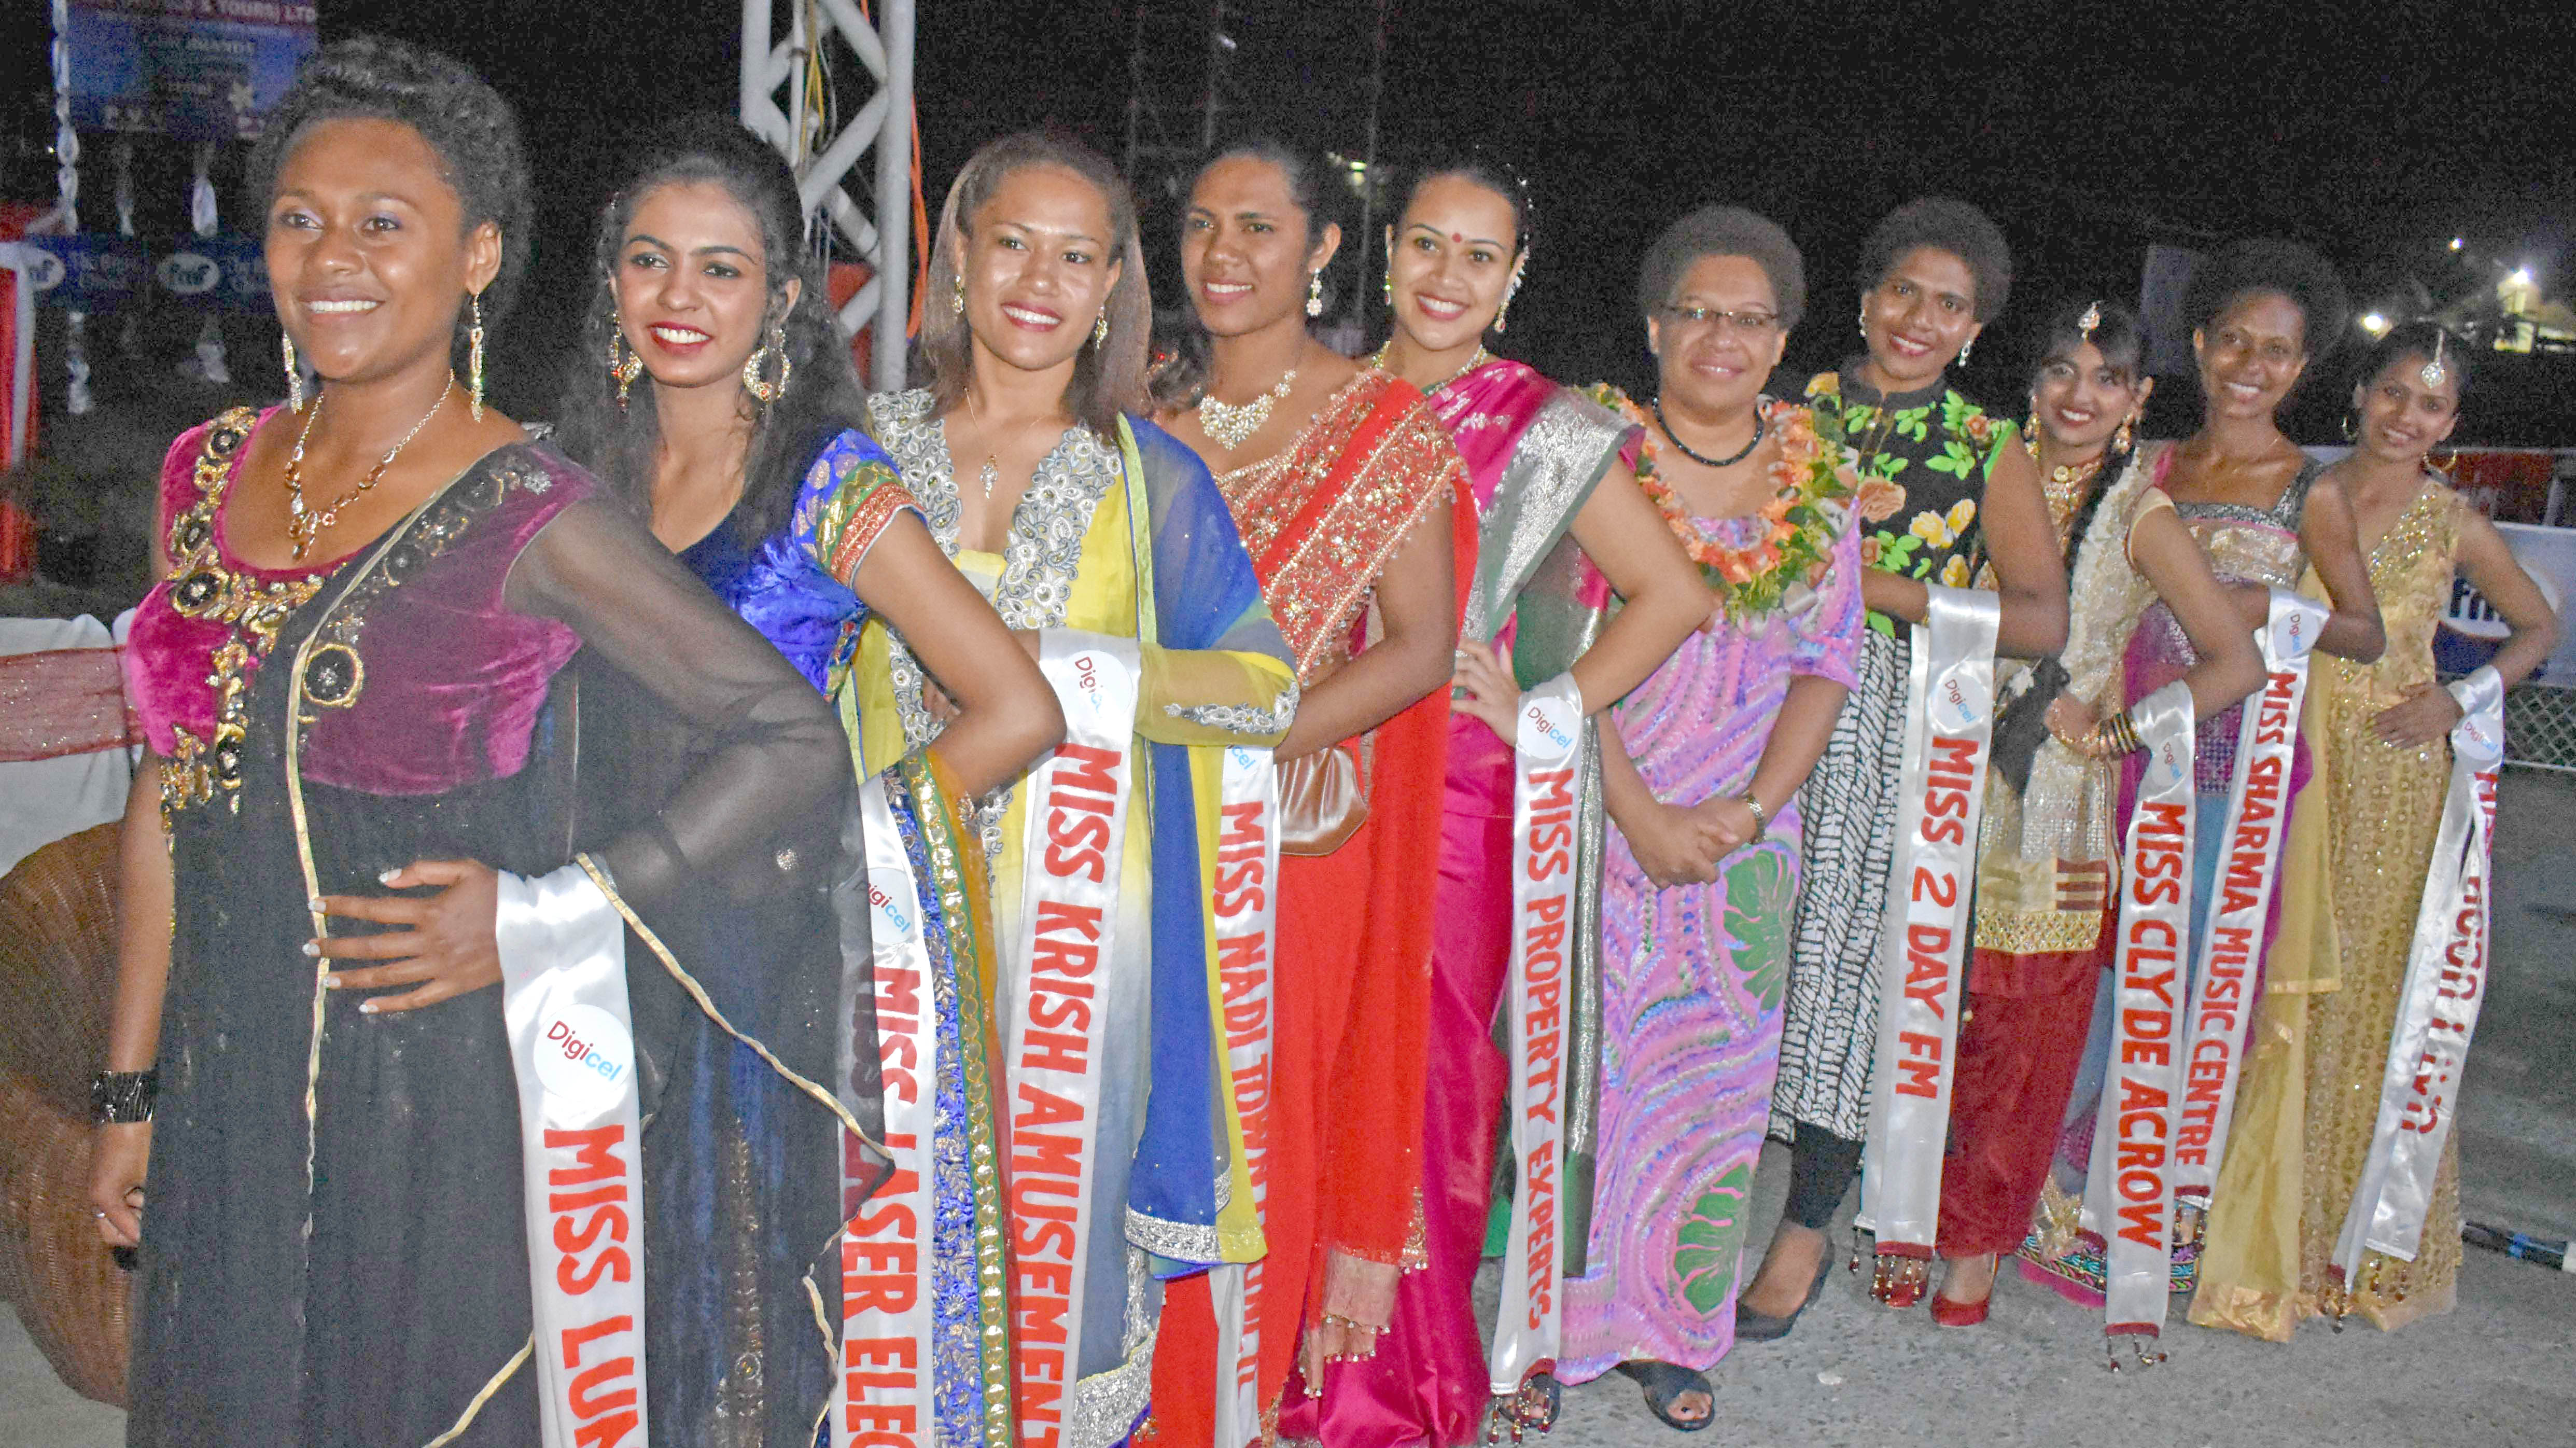 Minister for Women, Children and Poverty Alleviation Mereseini Vuniwaqa with the contestants at the opening of the Digicel Nadi Bula Festival at the Prince Charles Park in Nadi yesterday. Photo: WAISEA NASOKIA